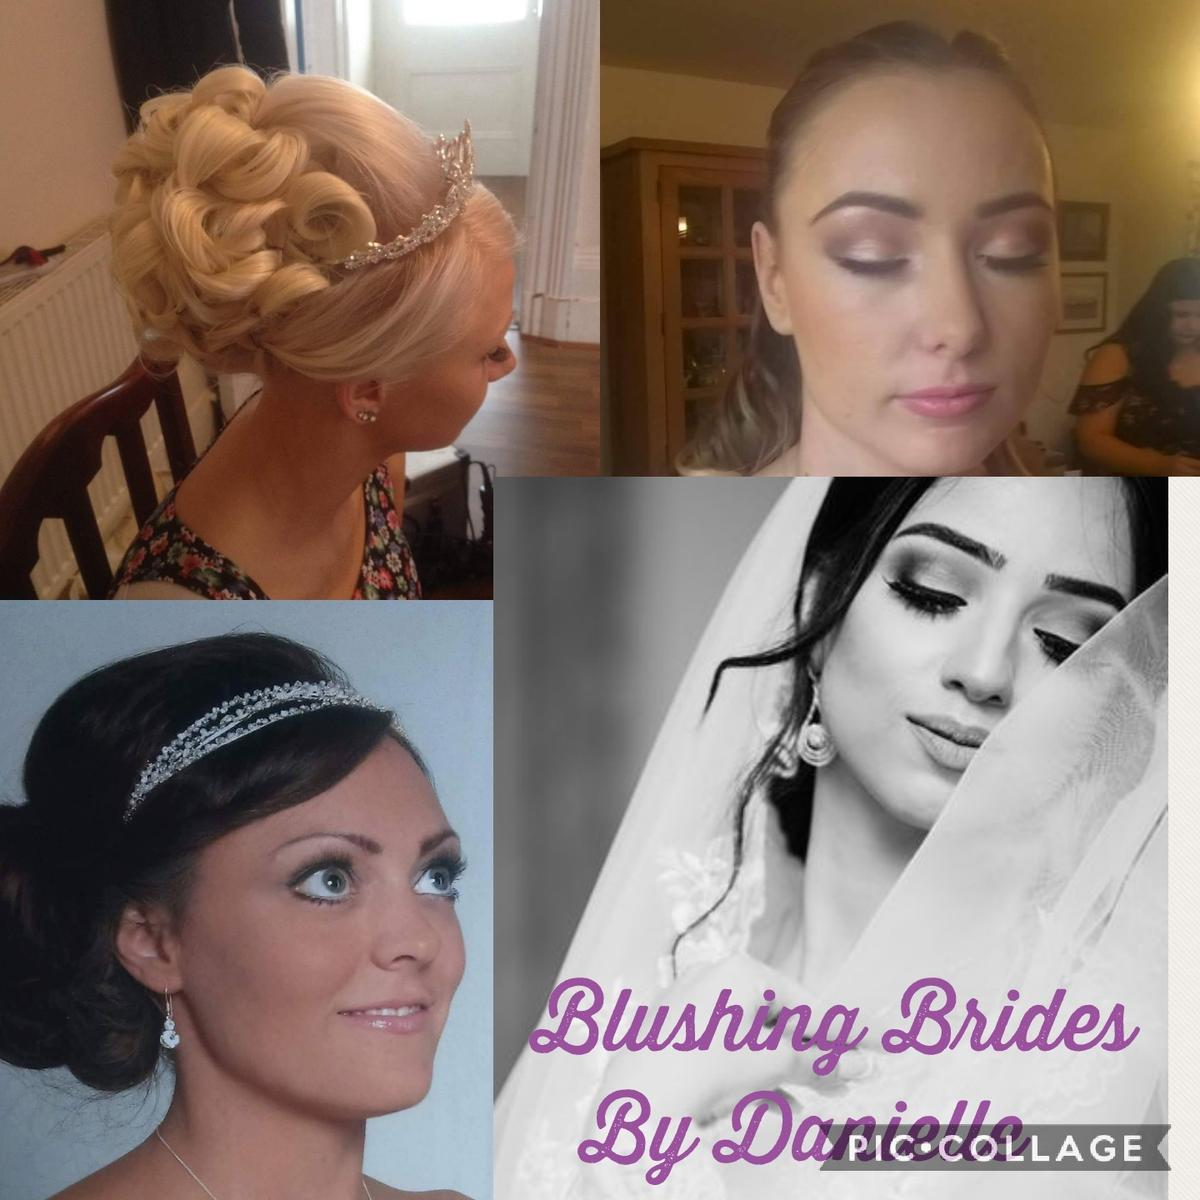 bridal hair and make-up artist in ch42 wirral for £10.00 for